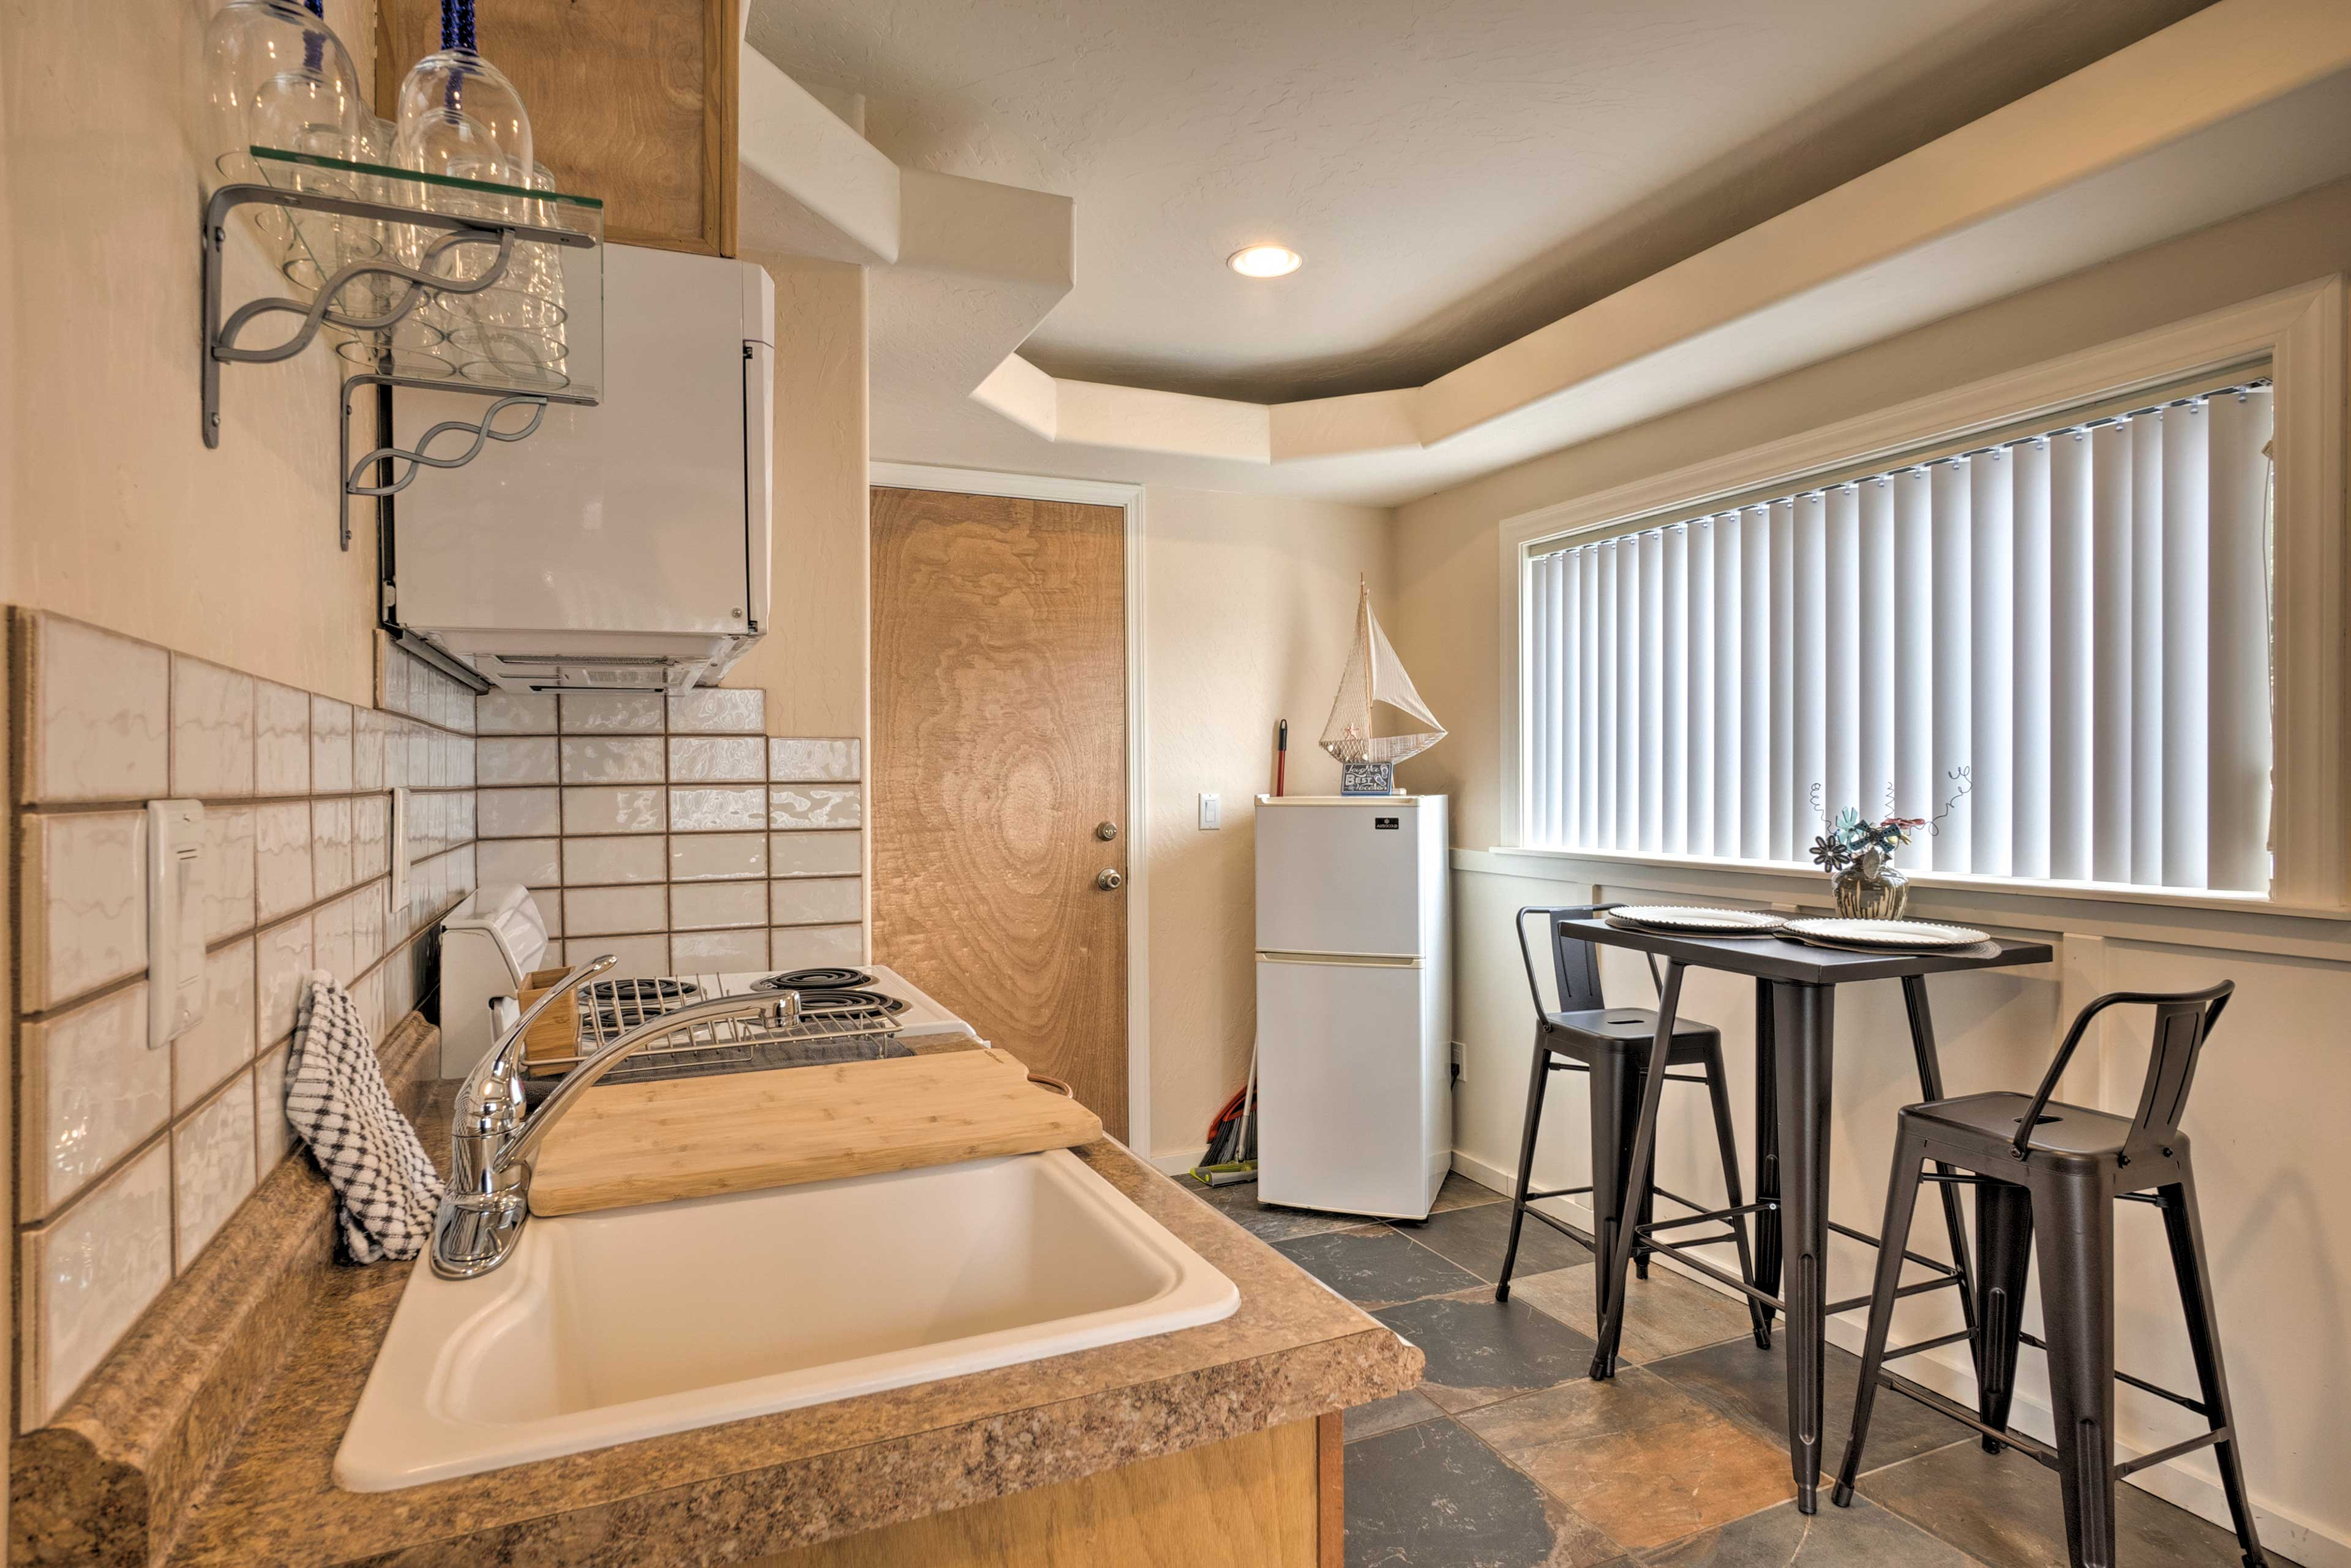 The cozy interior is filled with modern amenities!